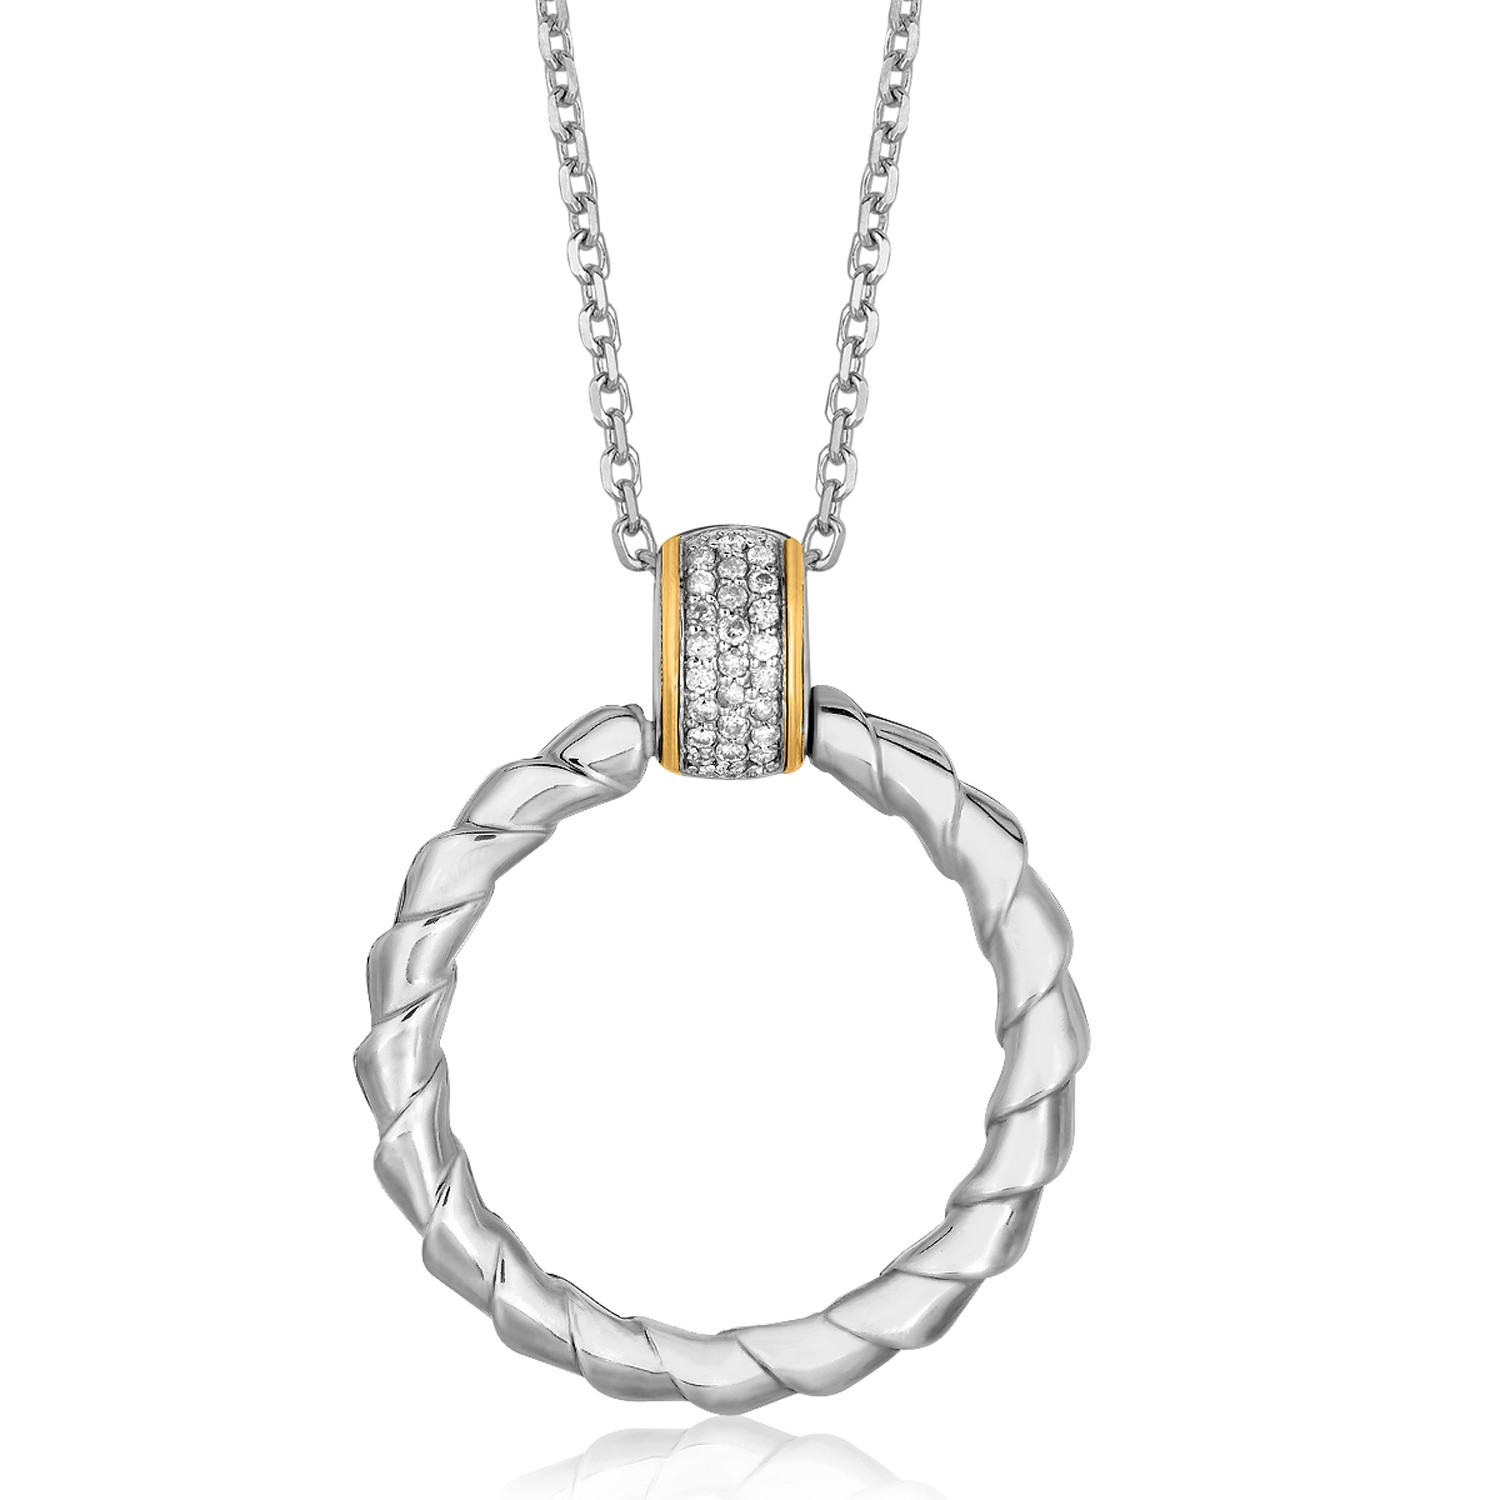 Spiral Ribbon Design Diamond Accented Ring Pendant In K Yellow Gold And Sterling Silver Satu